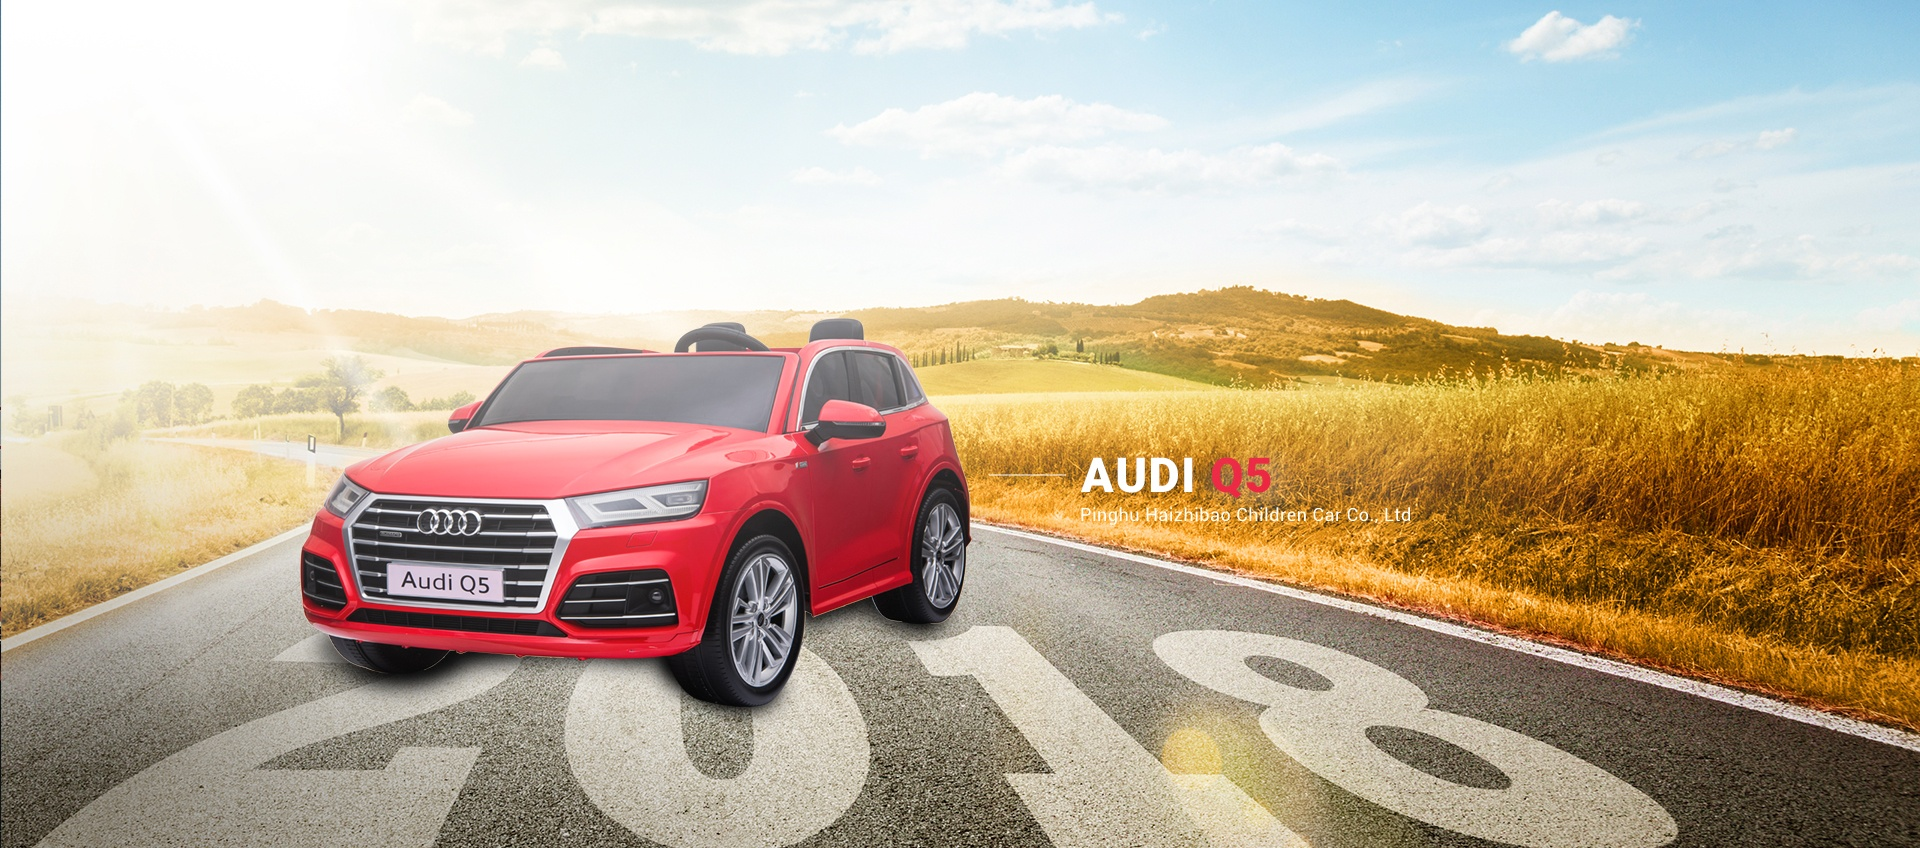 Audi Officially Licensed Ride On Toy Car